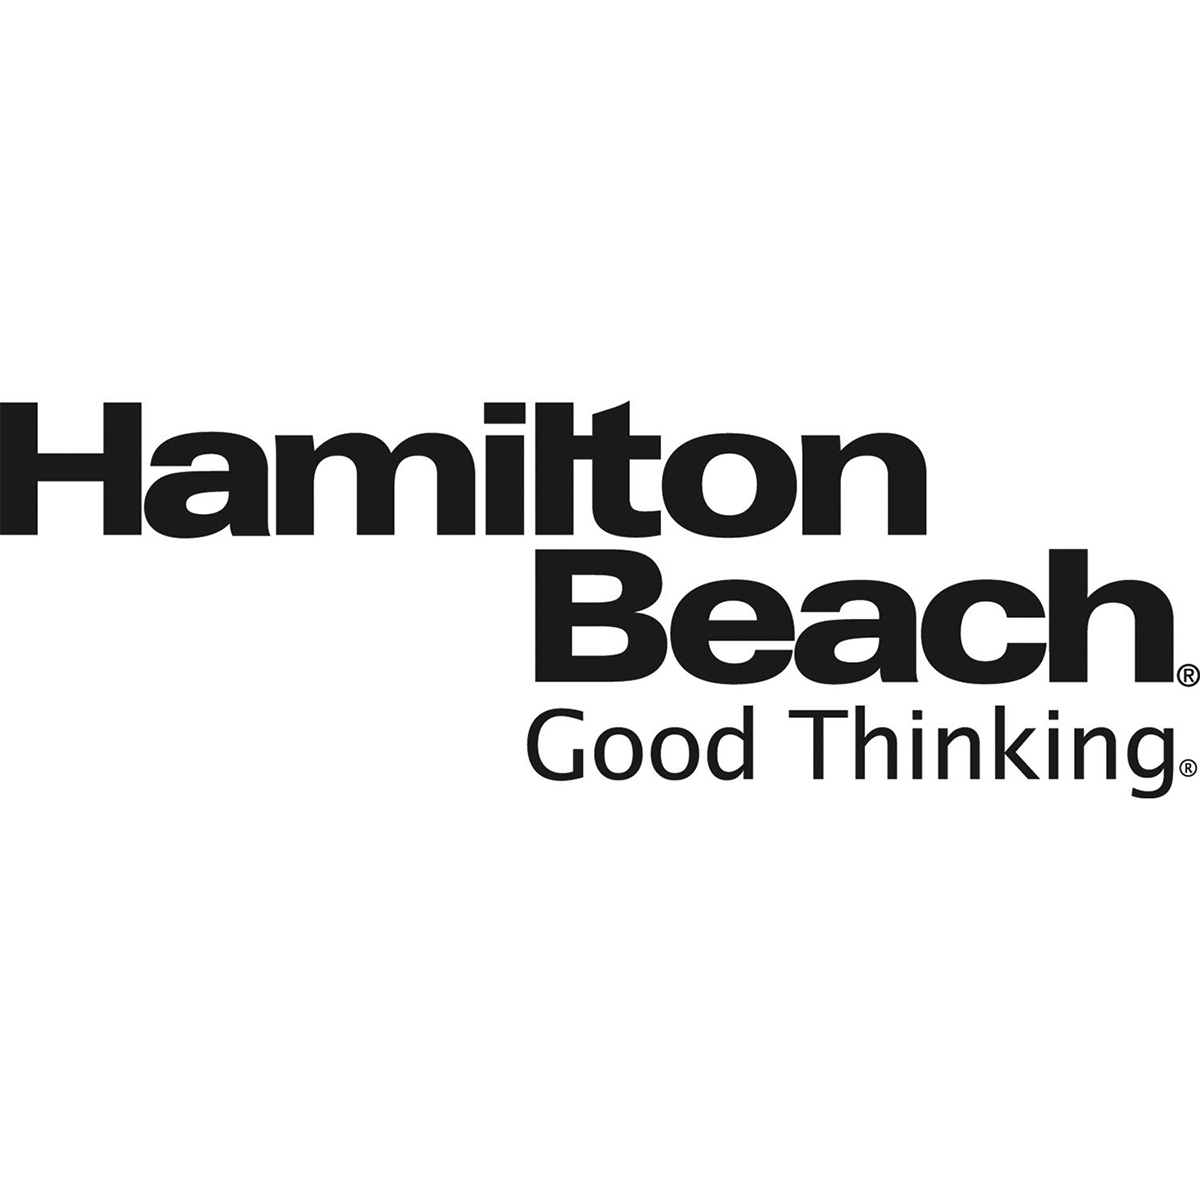 Hamilton Beach Good Thinking